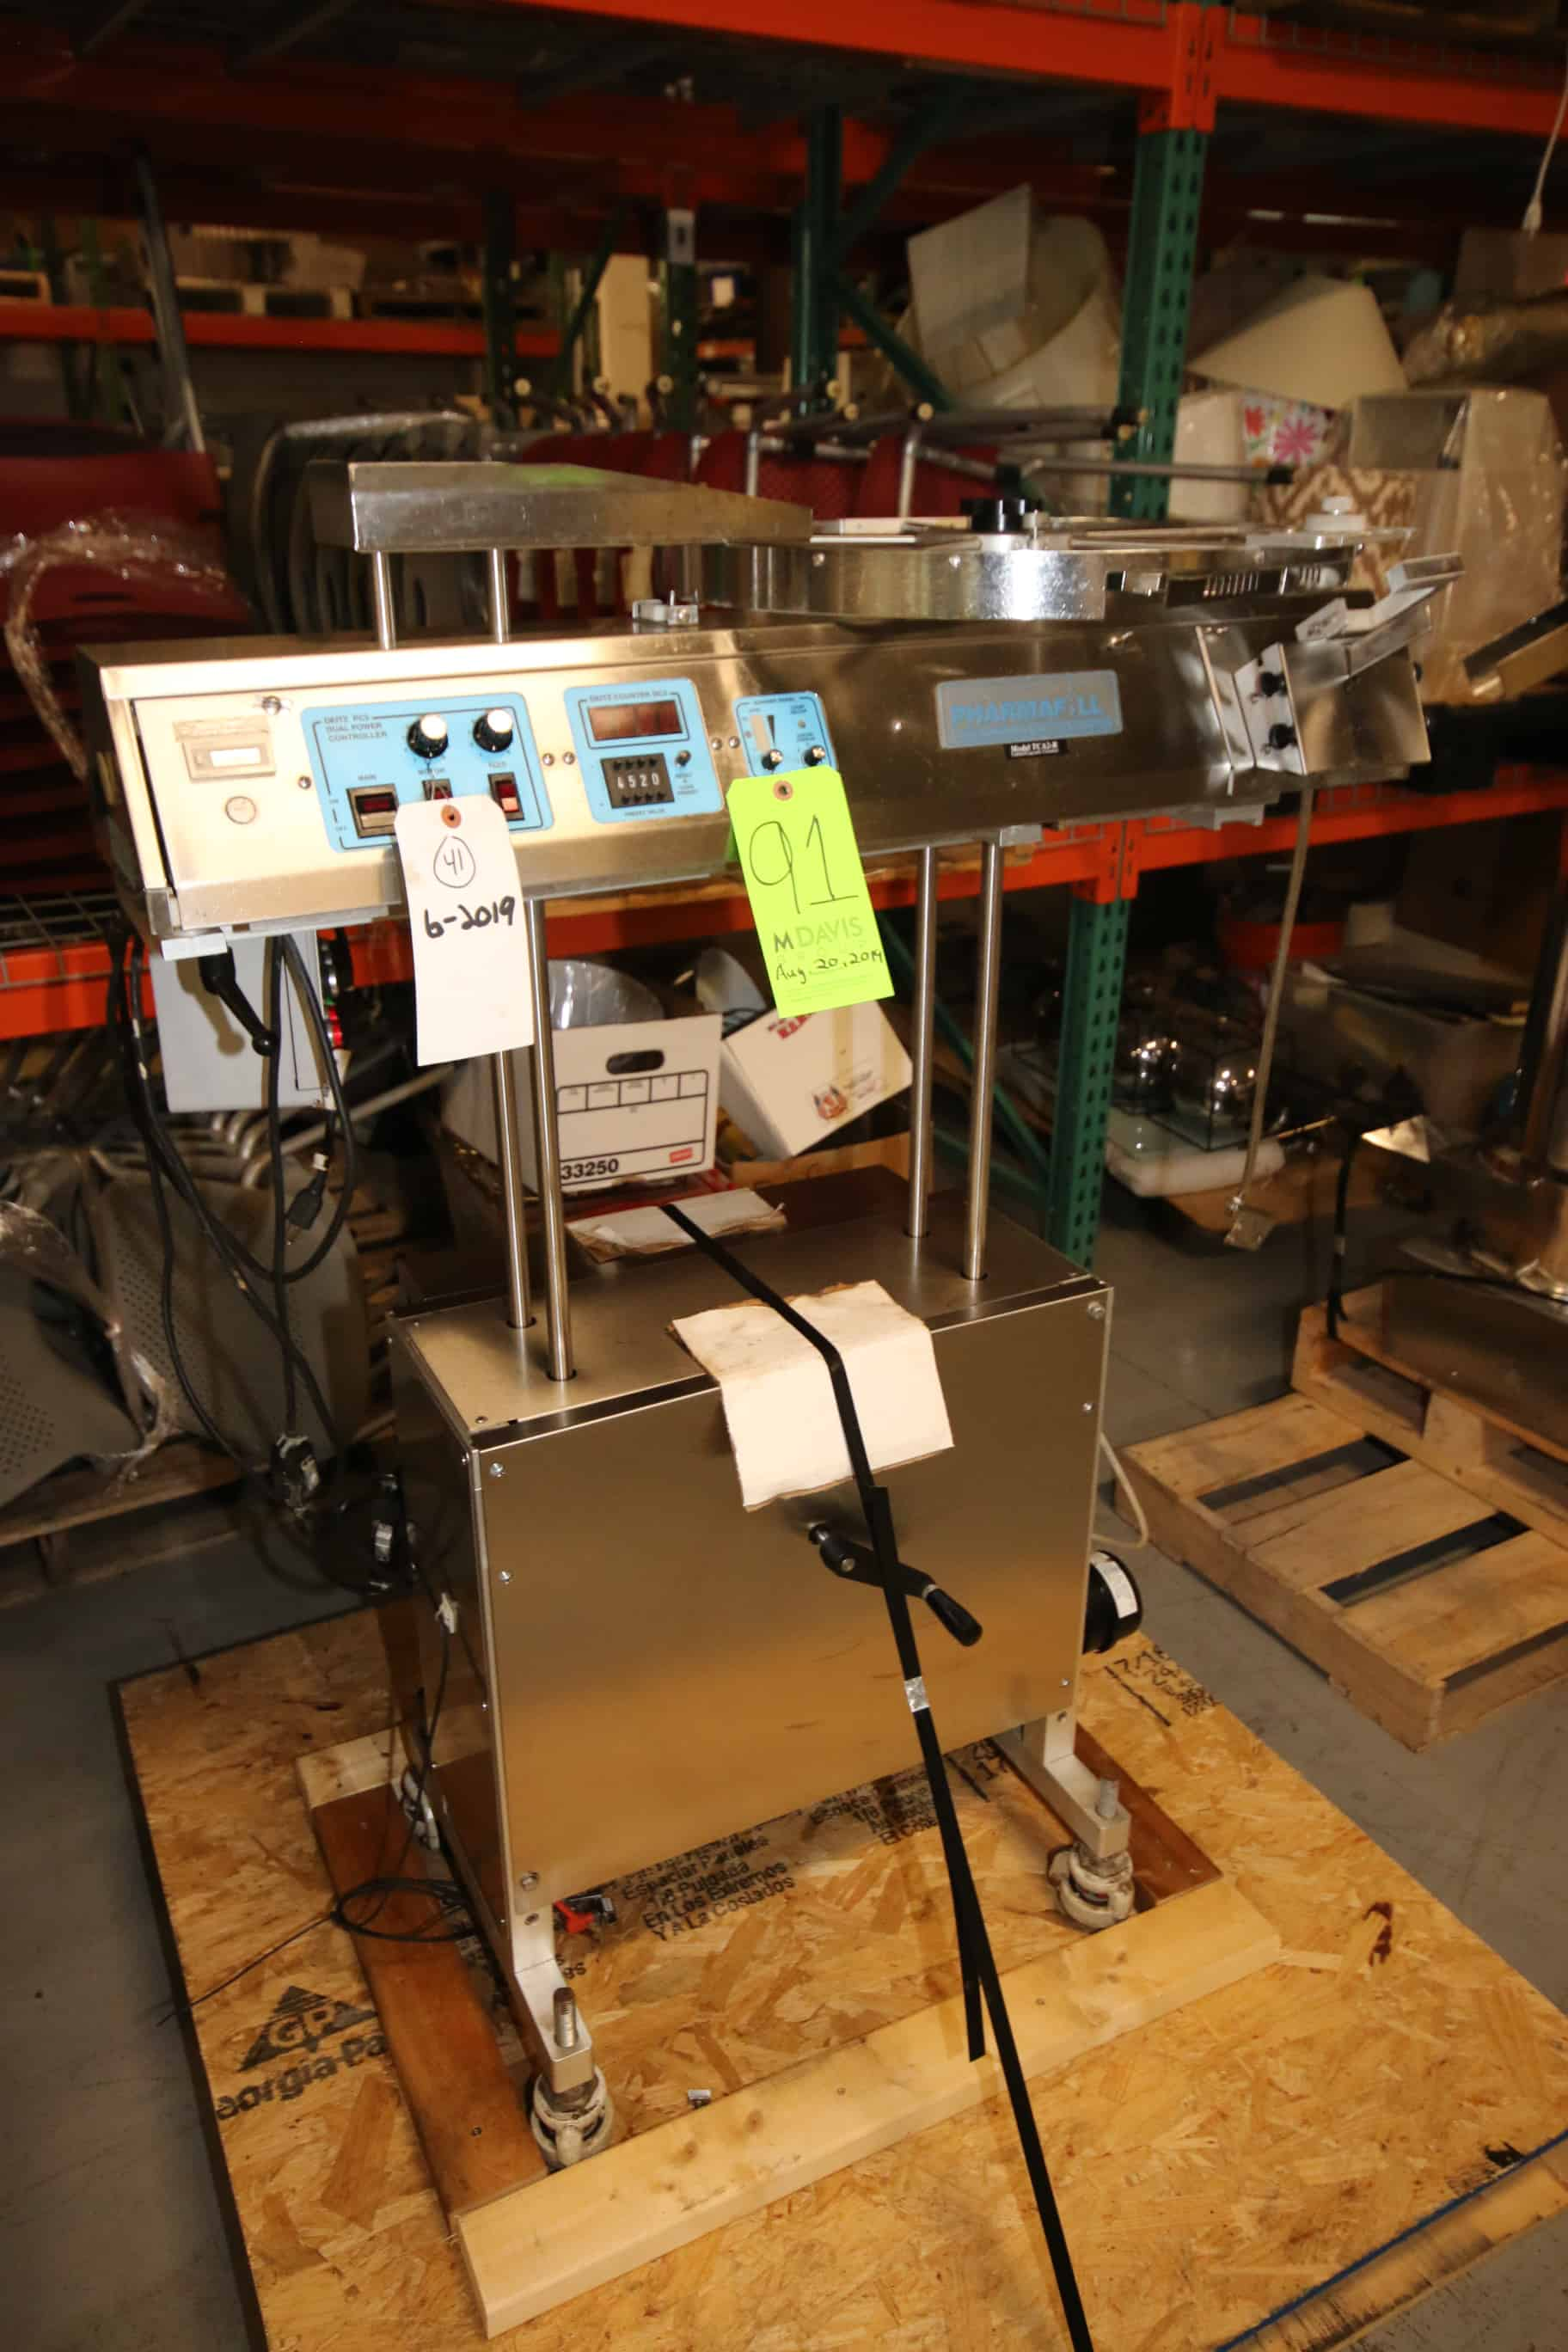 Deitz S/S Tablet/Capsule Counter, M/N TCA2-R, S/N M2012, 115 Volts (Rigging & Loading Fee $100.00) (Located in Pittsburgh, PA)